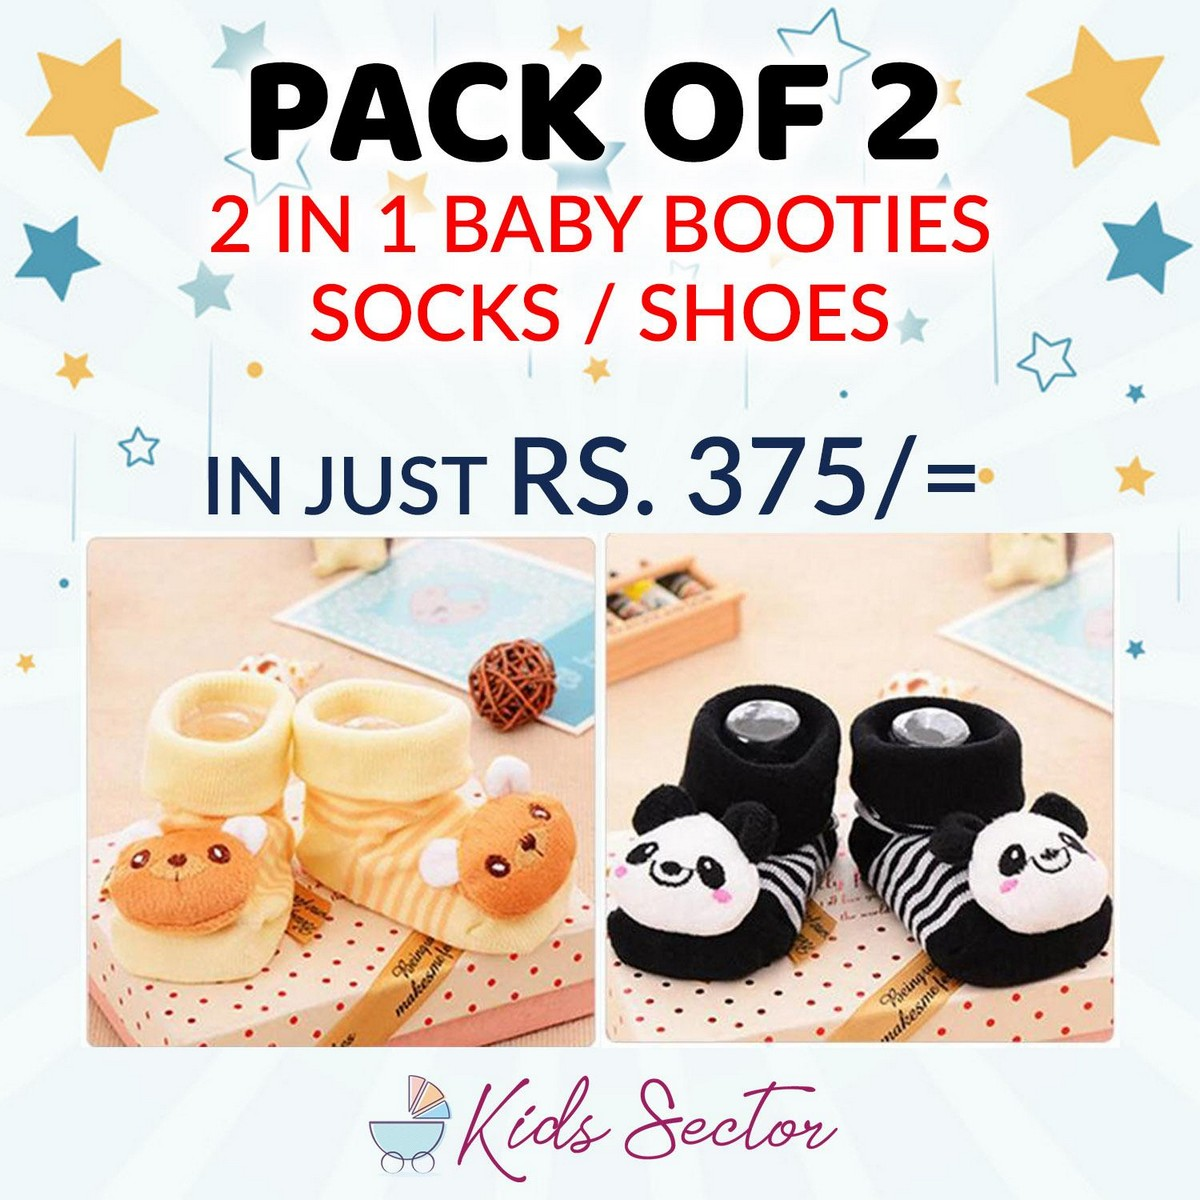 Pack of 2 - 2 in 1 Baby Socks and Shoes - Kids Toddlers Booties 0 - 12 month